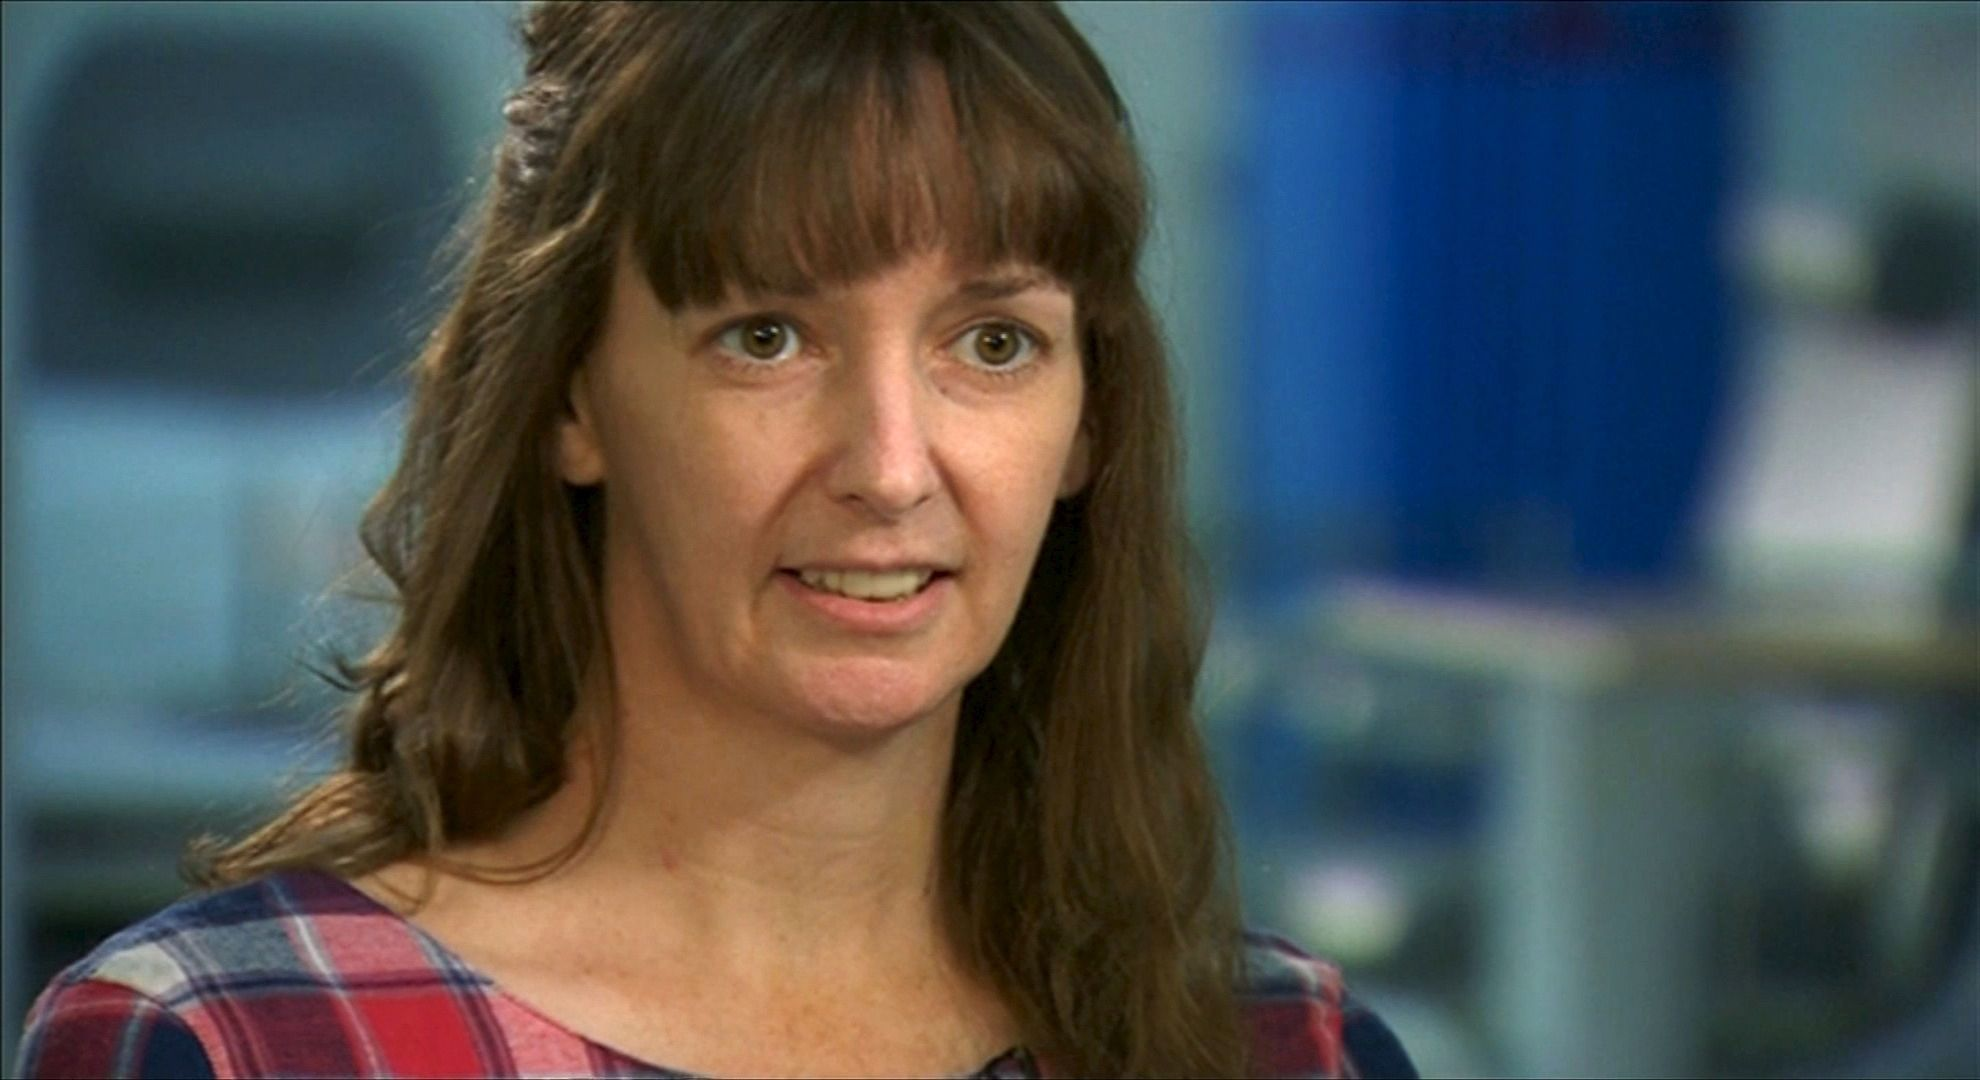 Scottish nurse Pauline Cafferkey, who contracted Ebola, speaks in an interview.